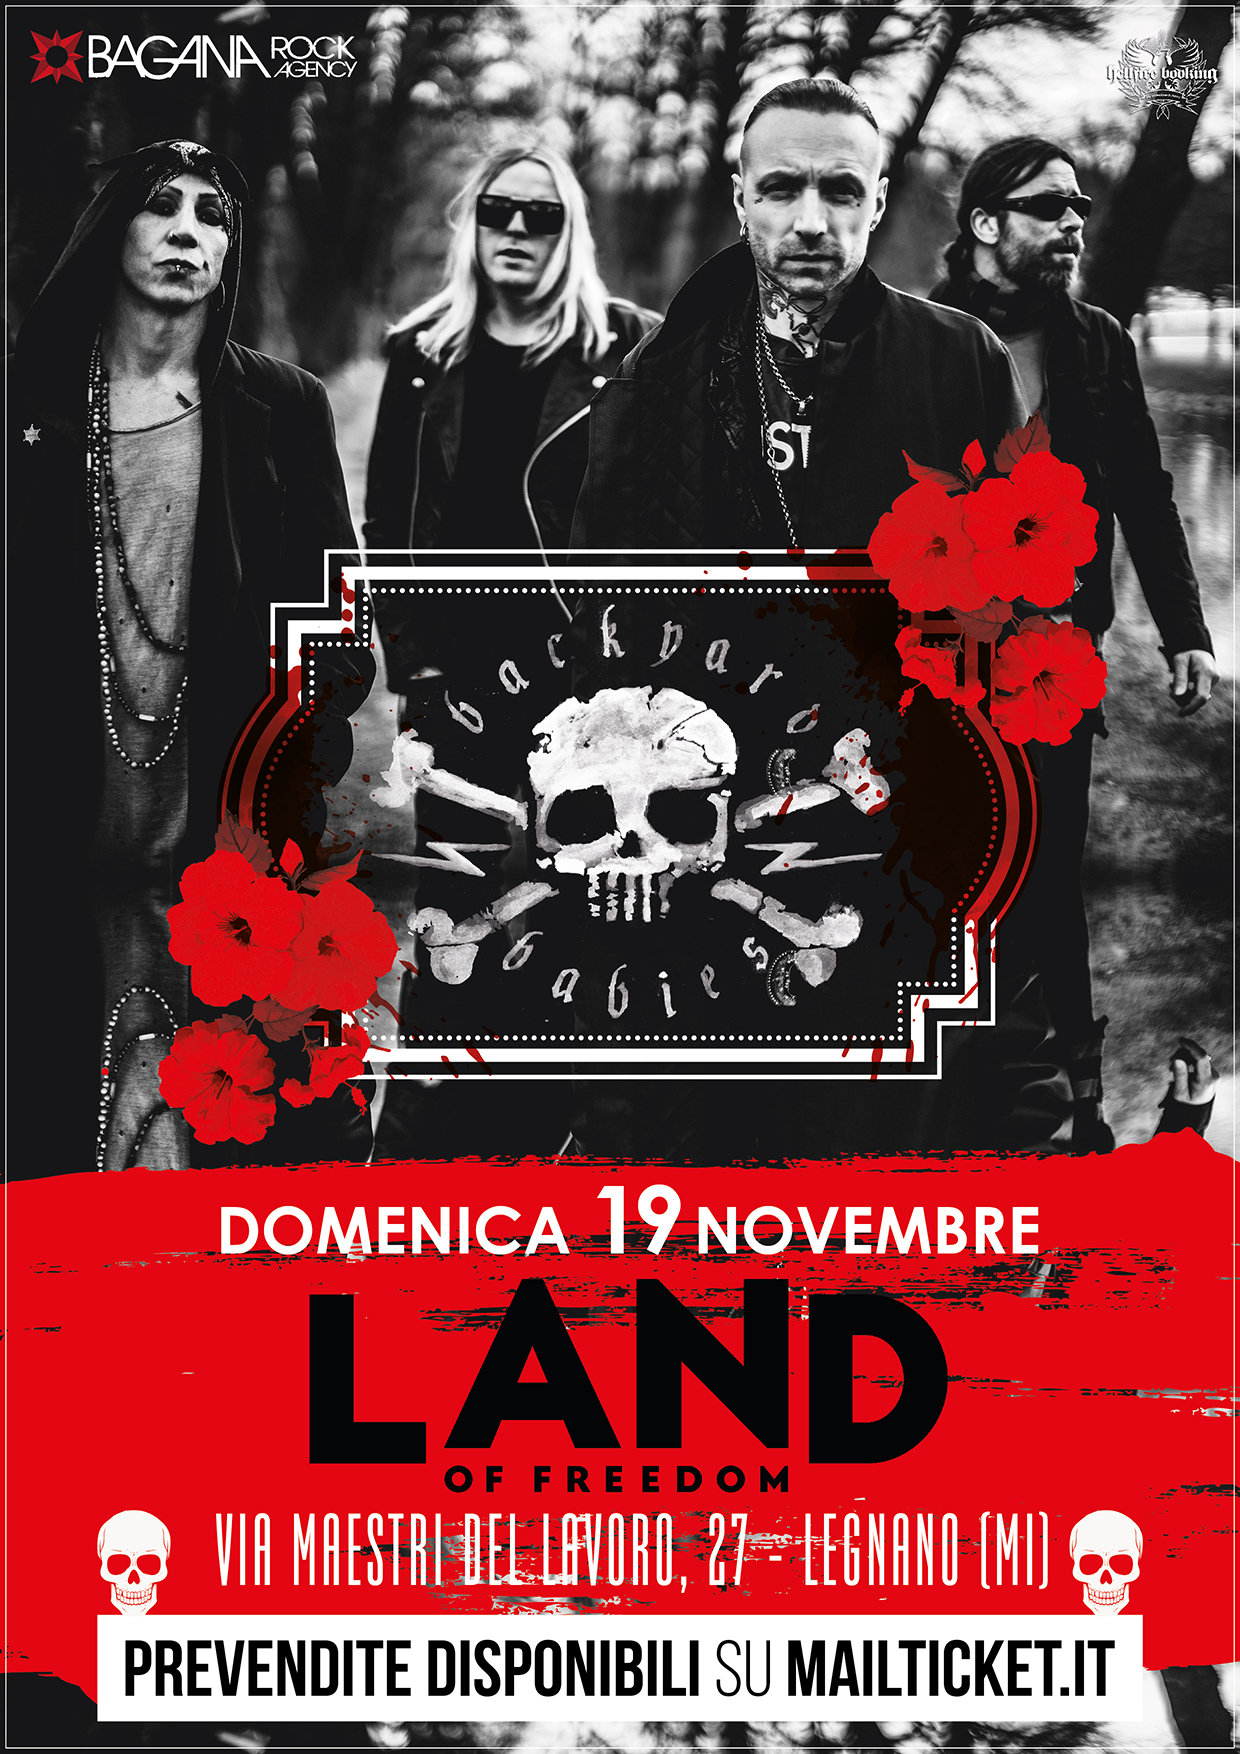 Backyard Babies: unica data in Italia il 19 novembre a Milano